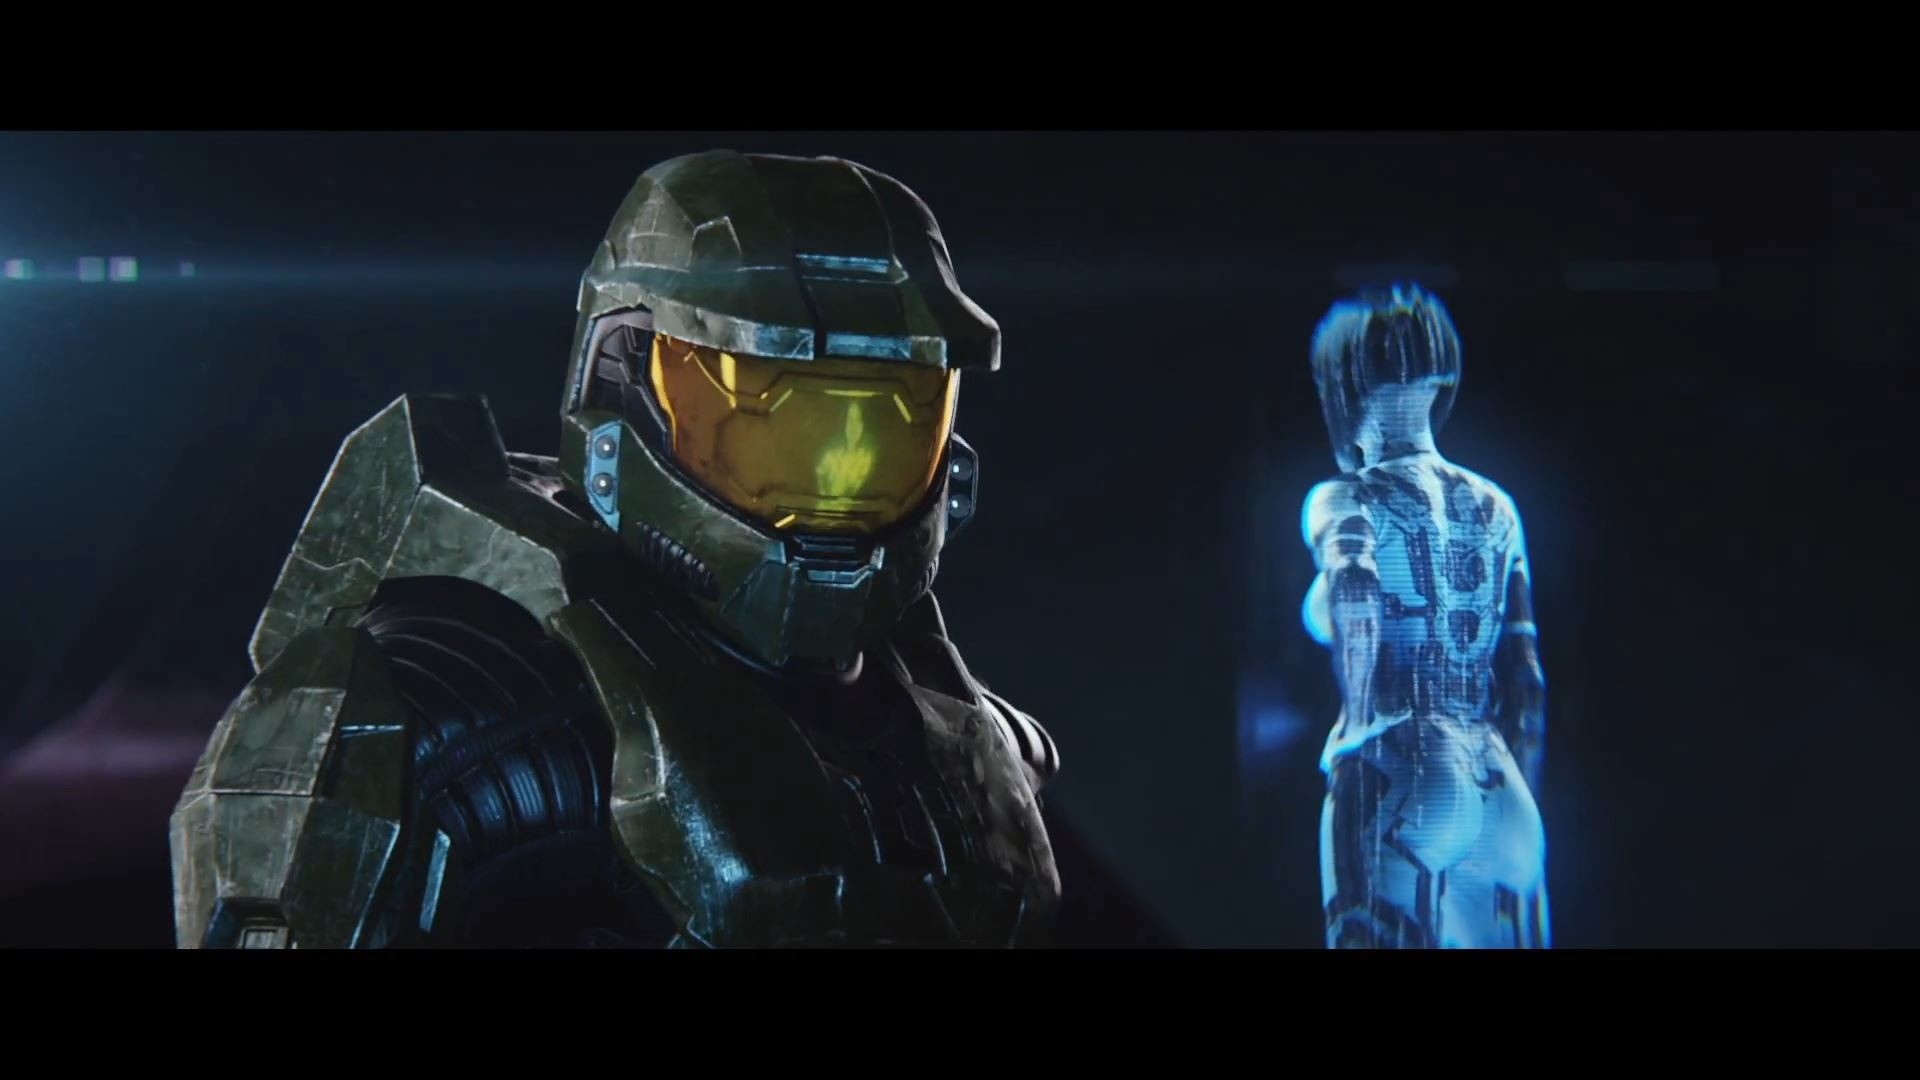 1920x1080 Halo 2 Anniversary Wallpaper Halo 2 Anniversary Wallpaper